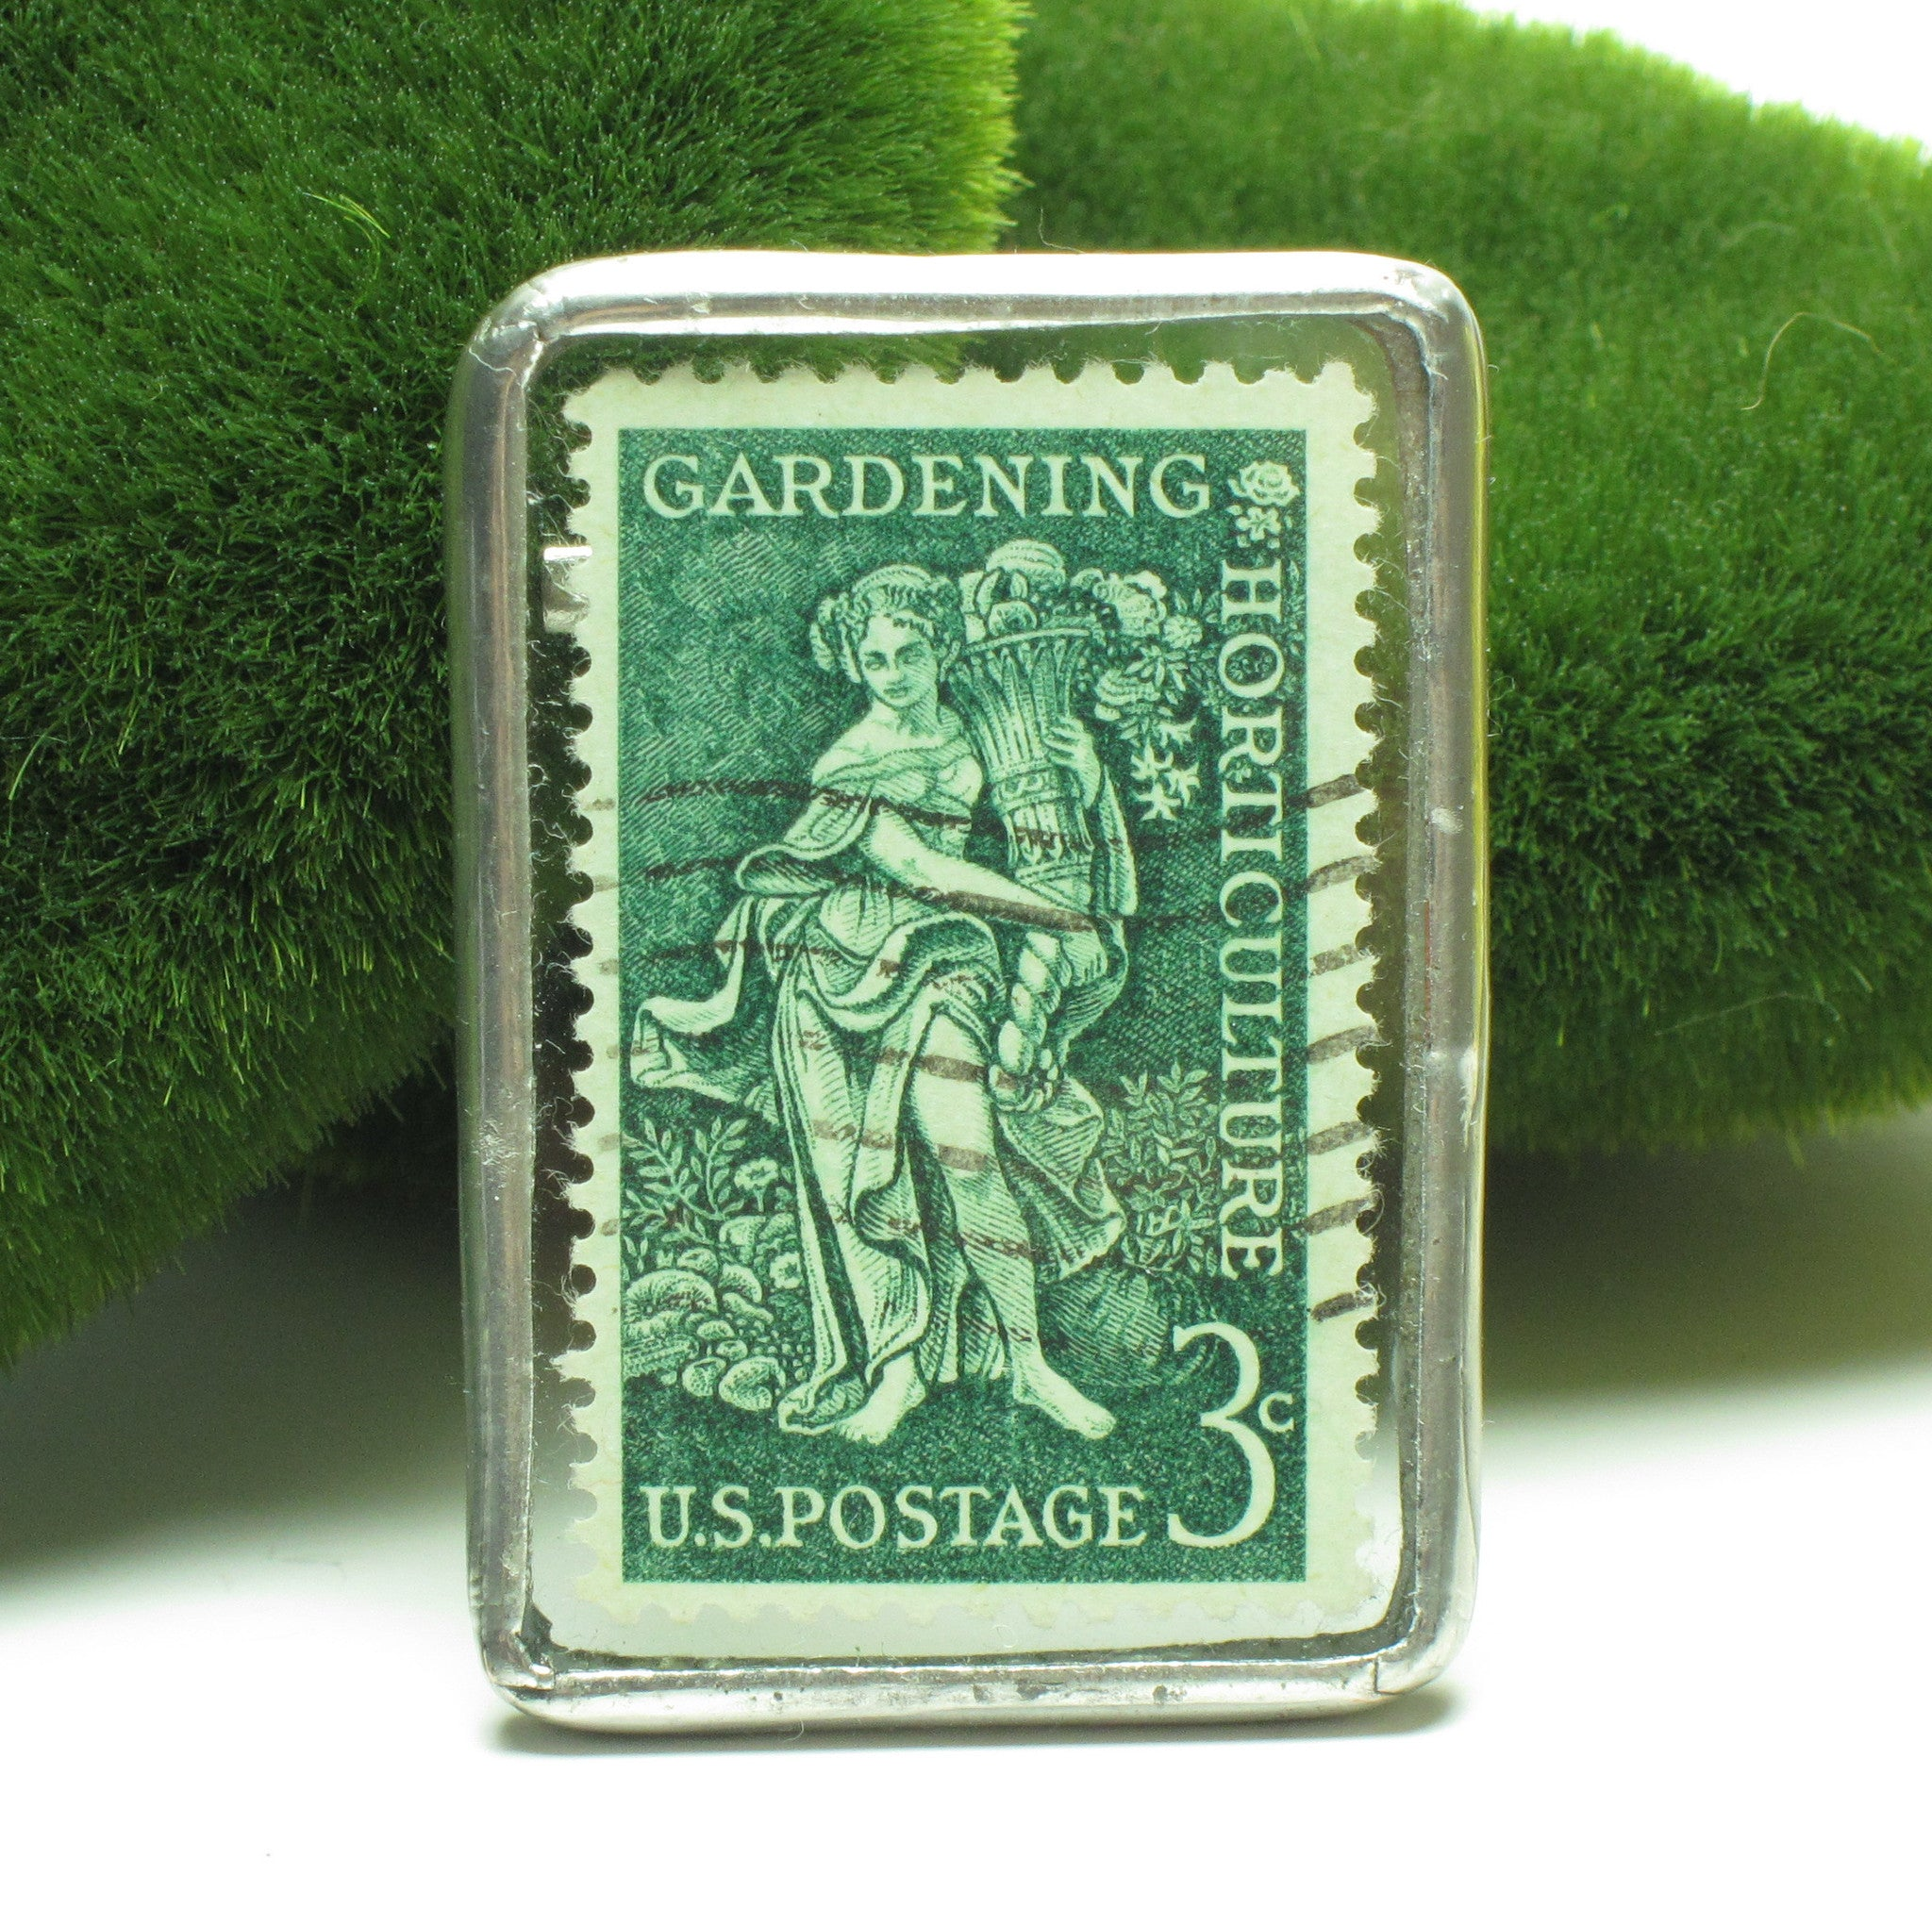 Gardening & Horticulture postage stamp pin brooch